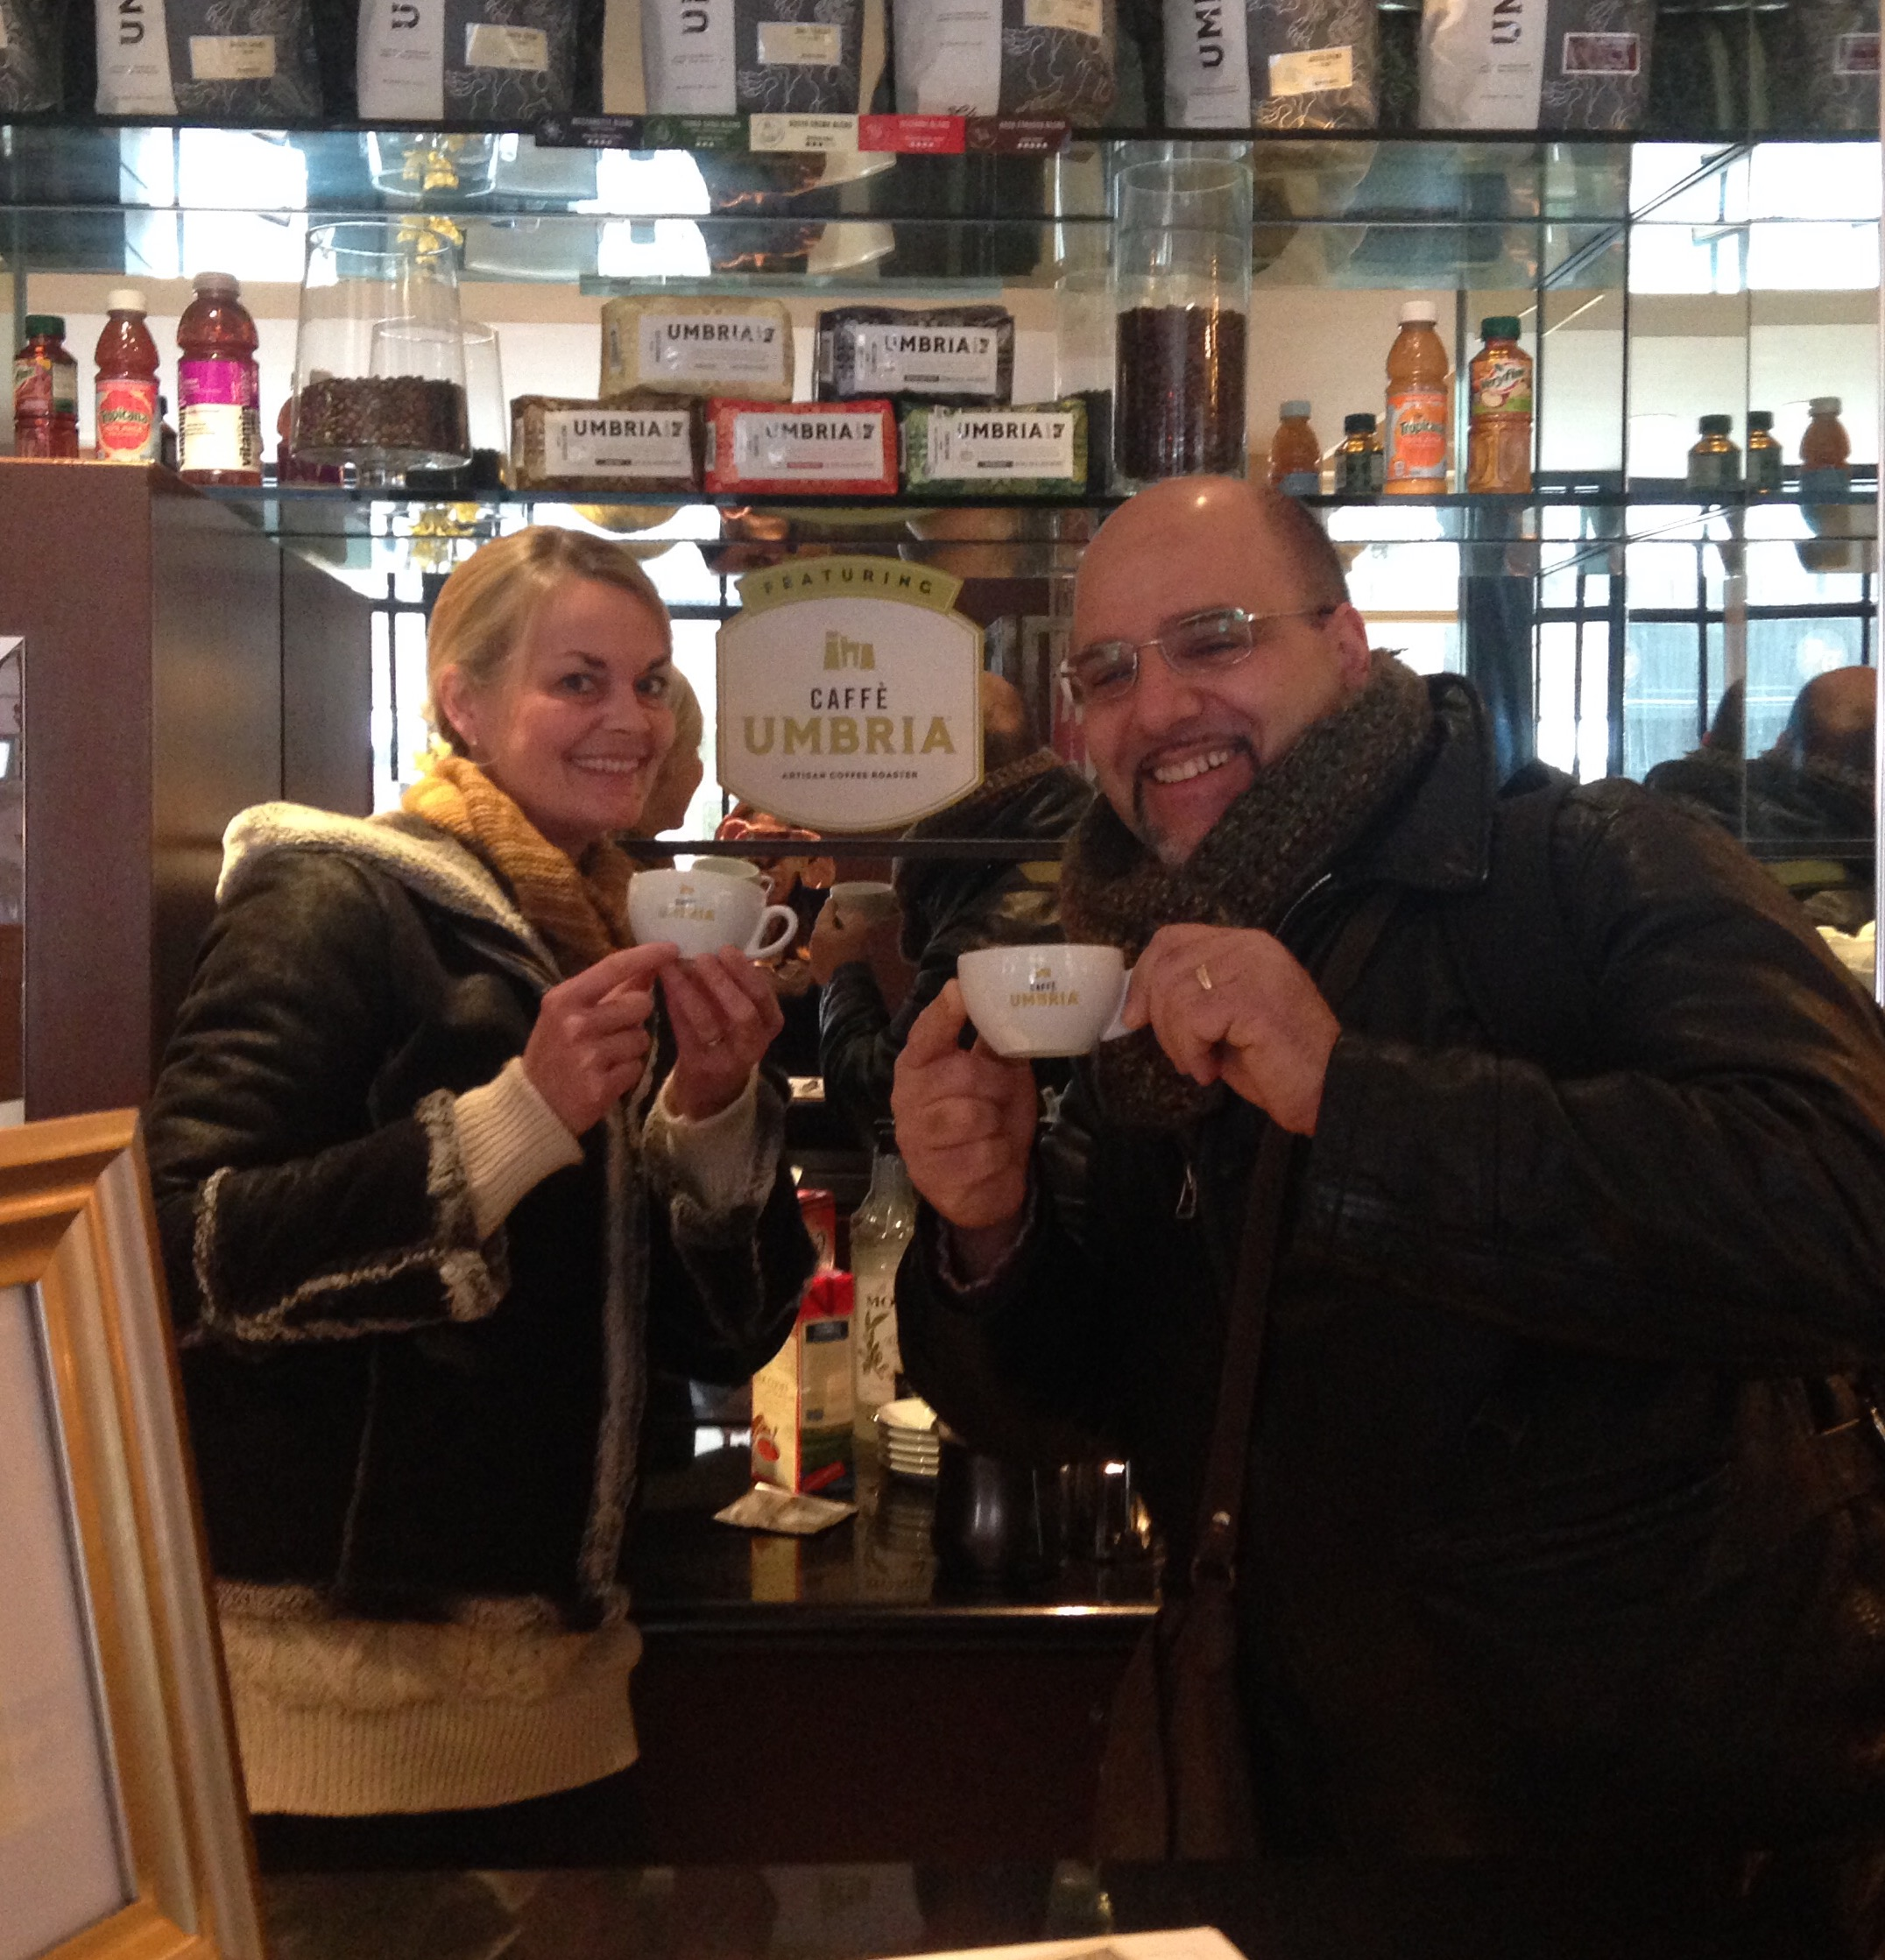 Umbrian Coffee in Chicago